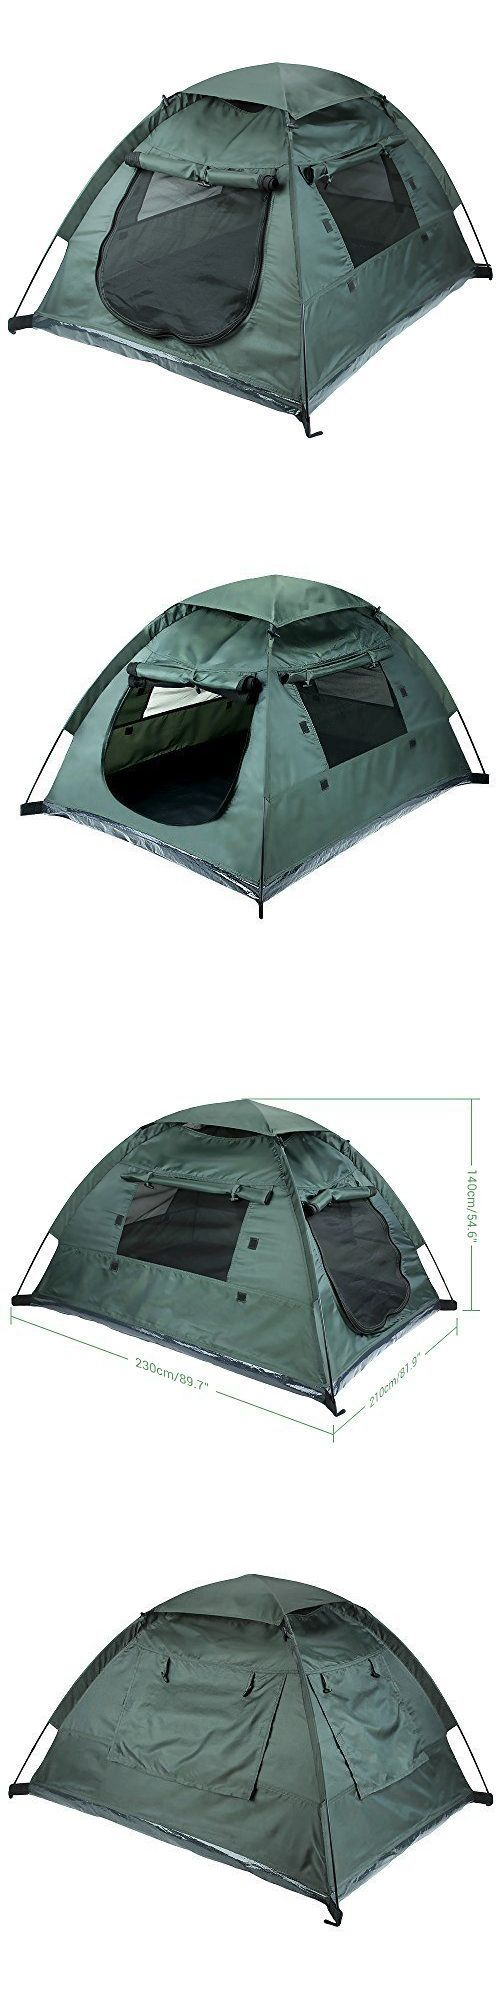 Dog Houses 108884: Dog Cat Pop Up Camping Gear Pet Portable Tent House Outdoor Foldable Doghouse -> BUY IT NOW ONLY: $58.76 on eBay!